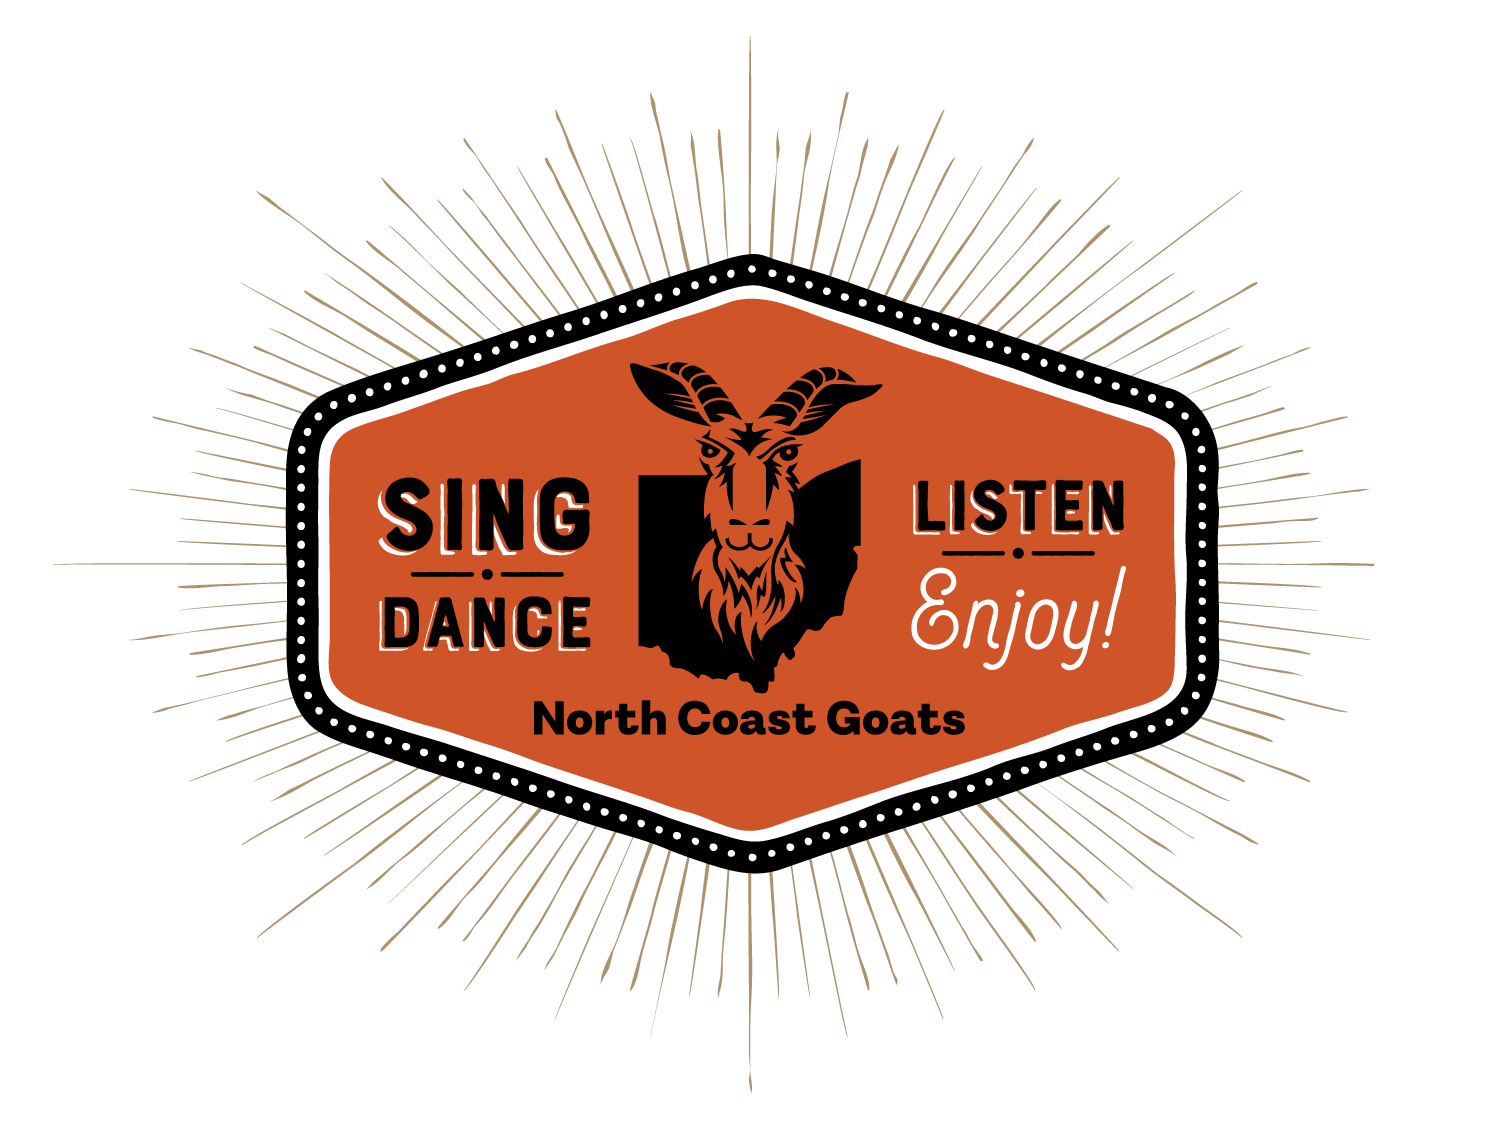 North Coast Goats badge design - Sing, Dance, Listen and Enjoy!